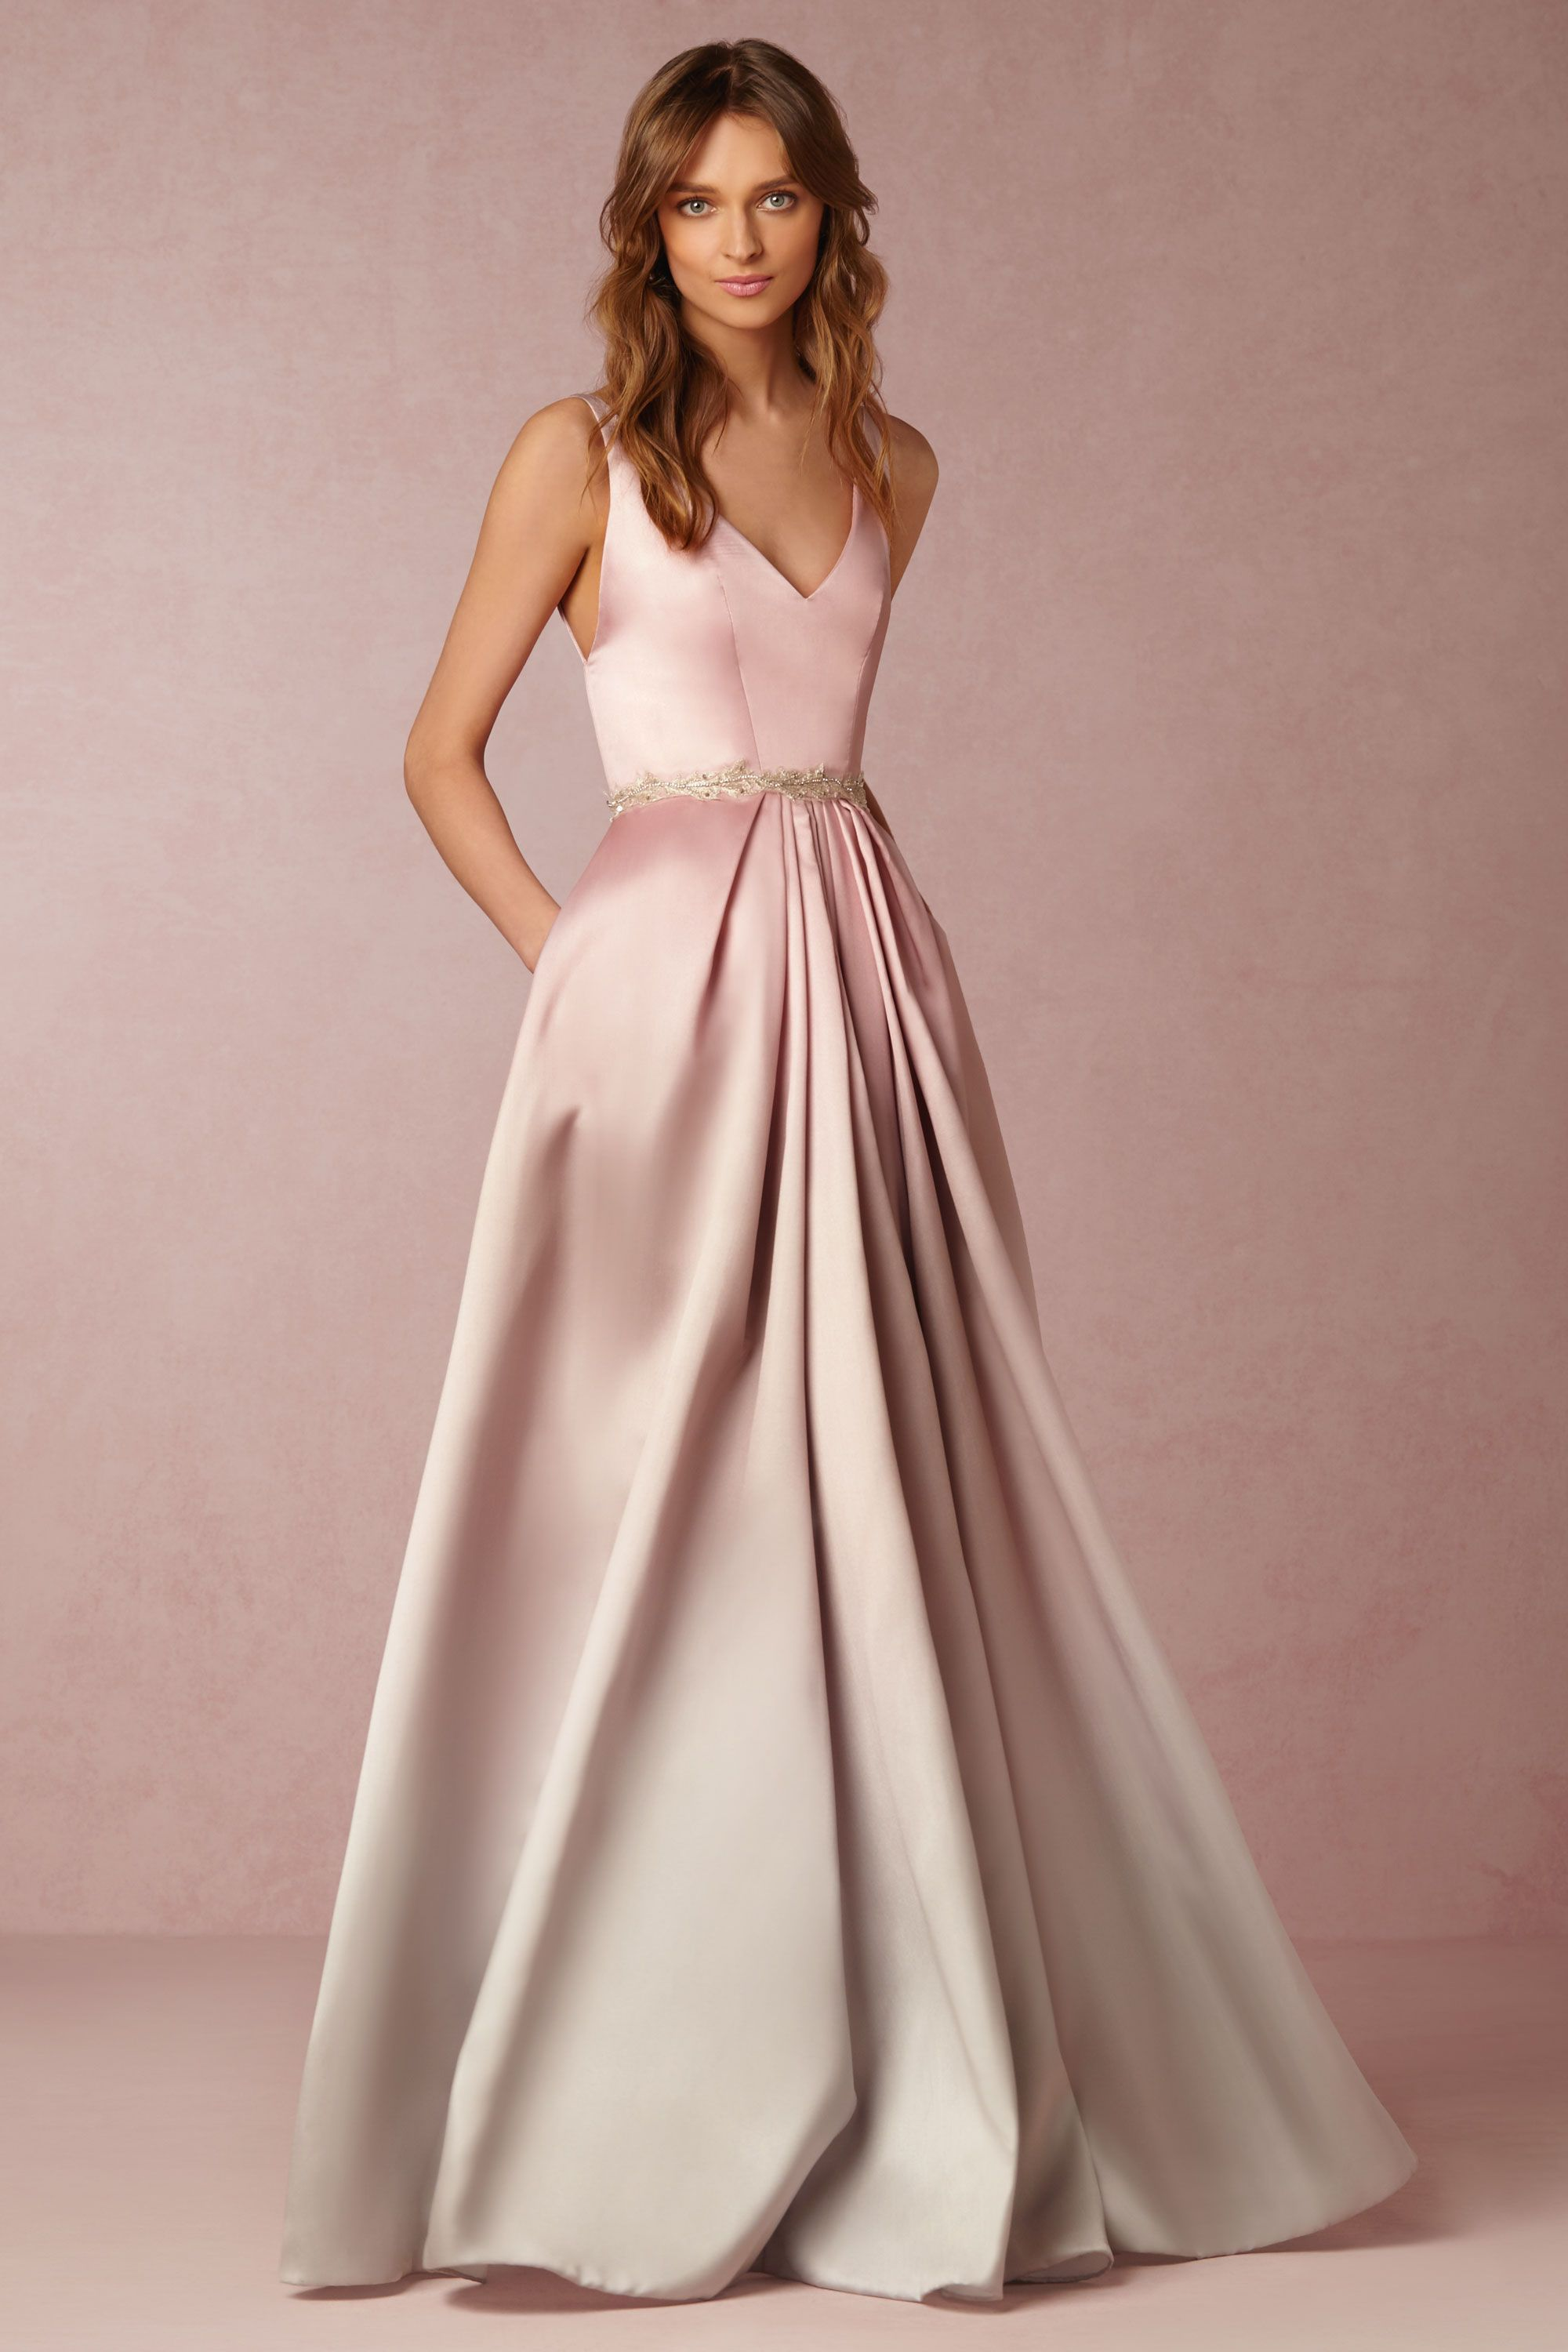 Lorraine Dress from @BHLDN | Fashionista | Pinterest | Boda ...